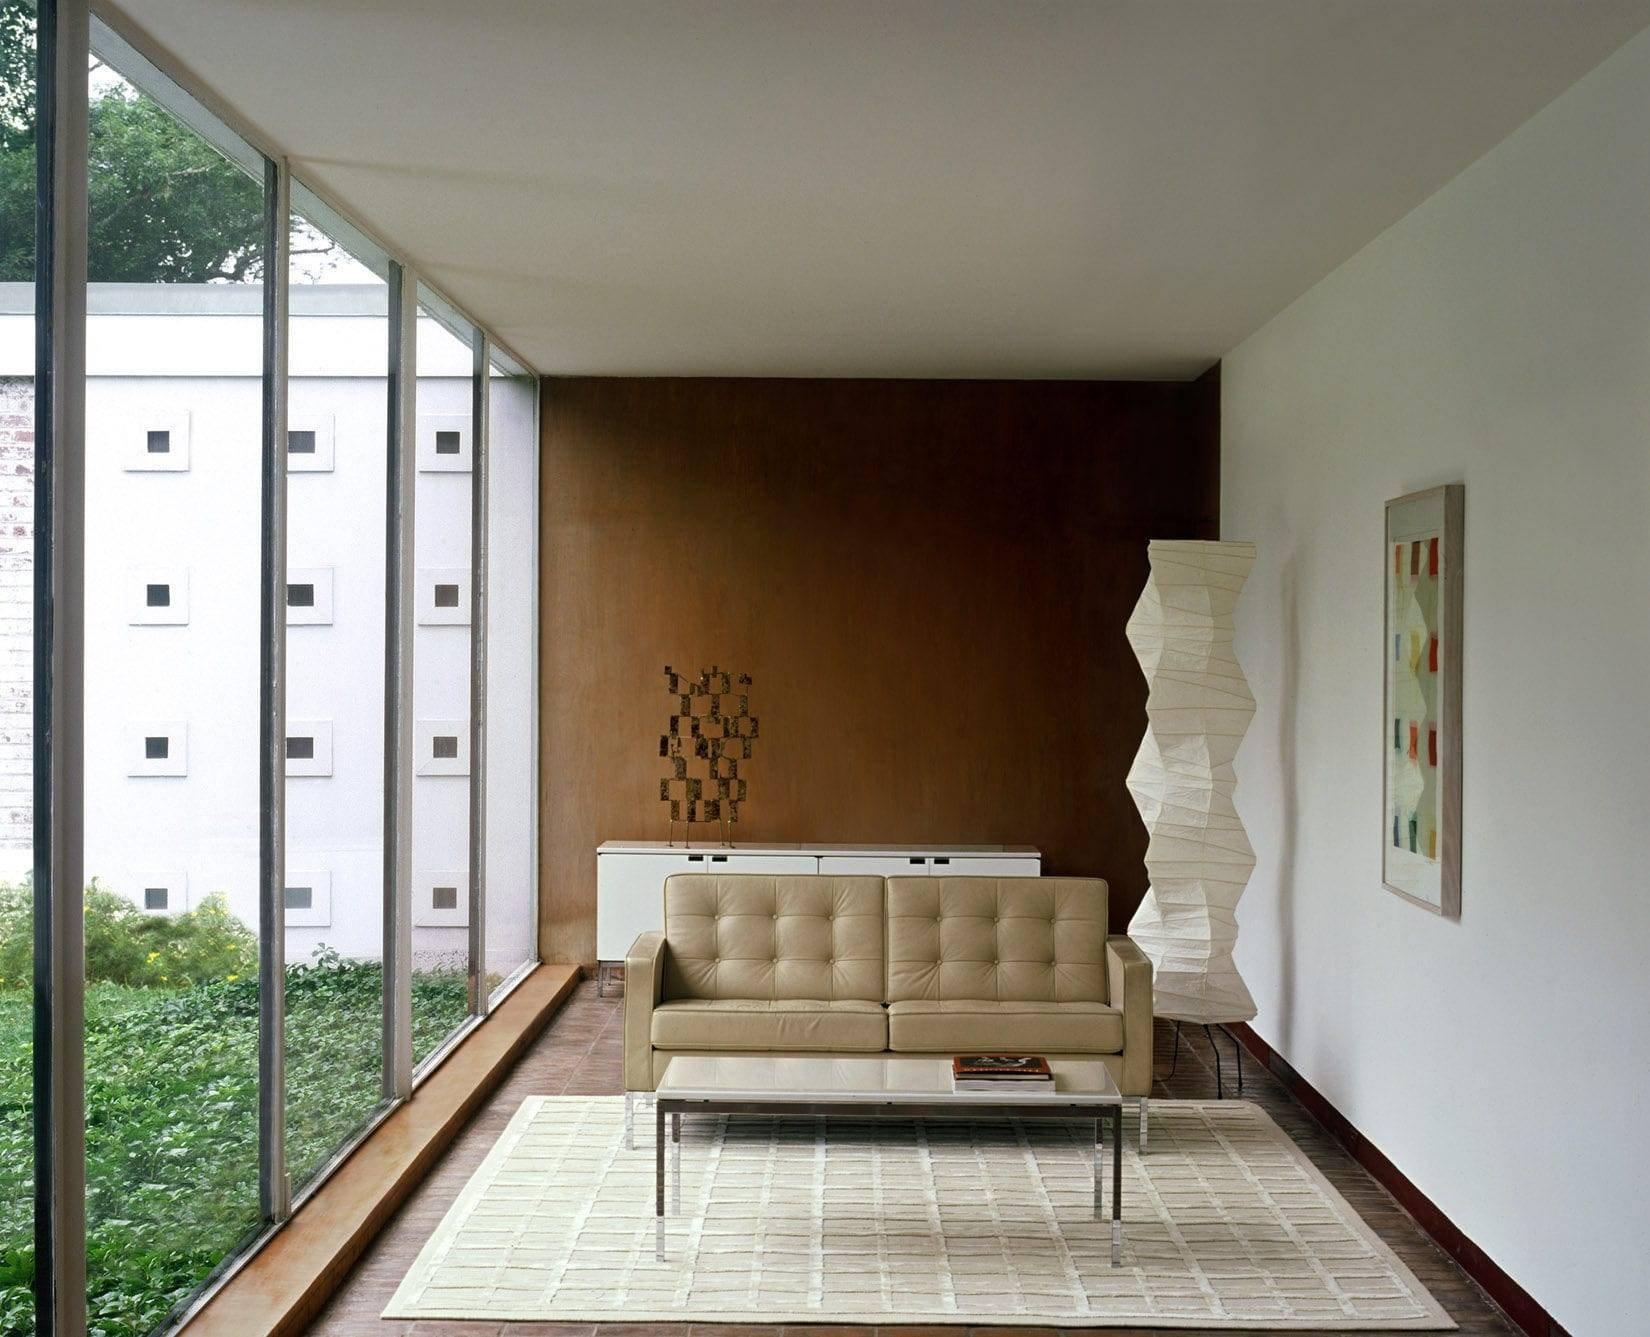 Contemporary Sofa / Leather / Fabric /florence Knoll - Knoll with Florence Knoll Fabric Sofas (Image 5 of 25)